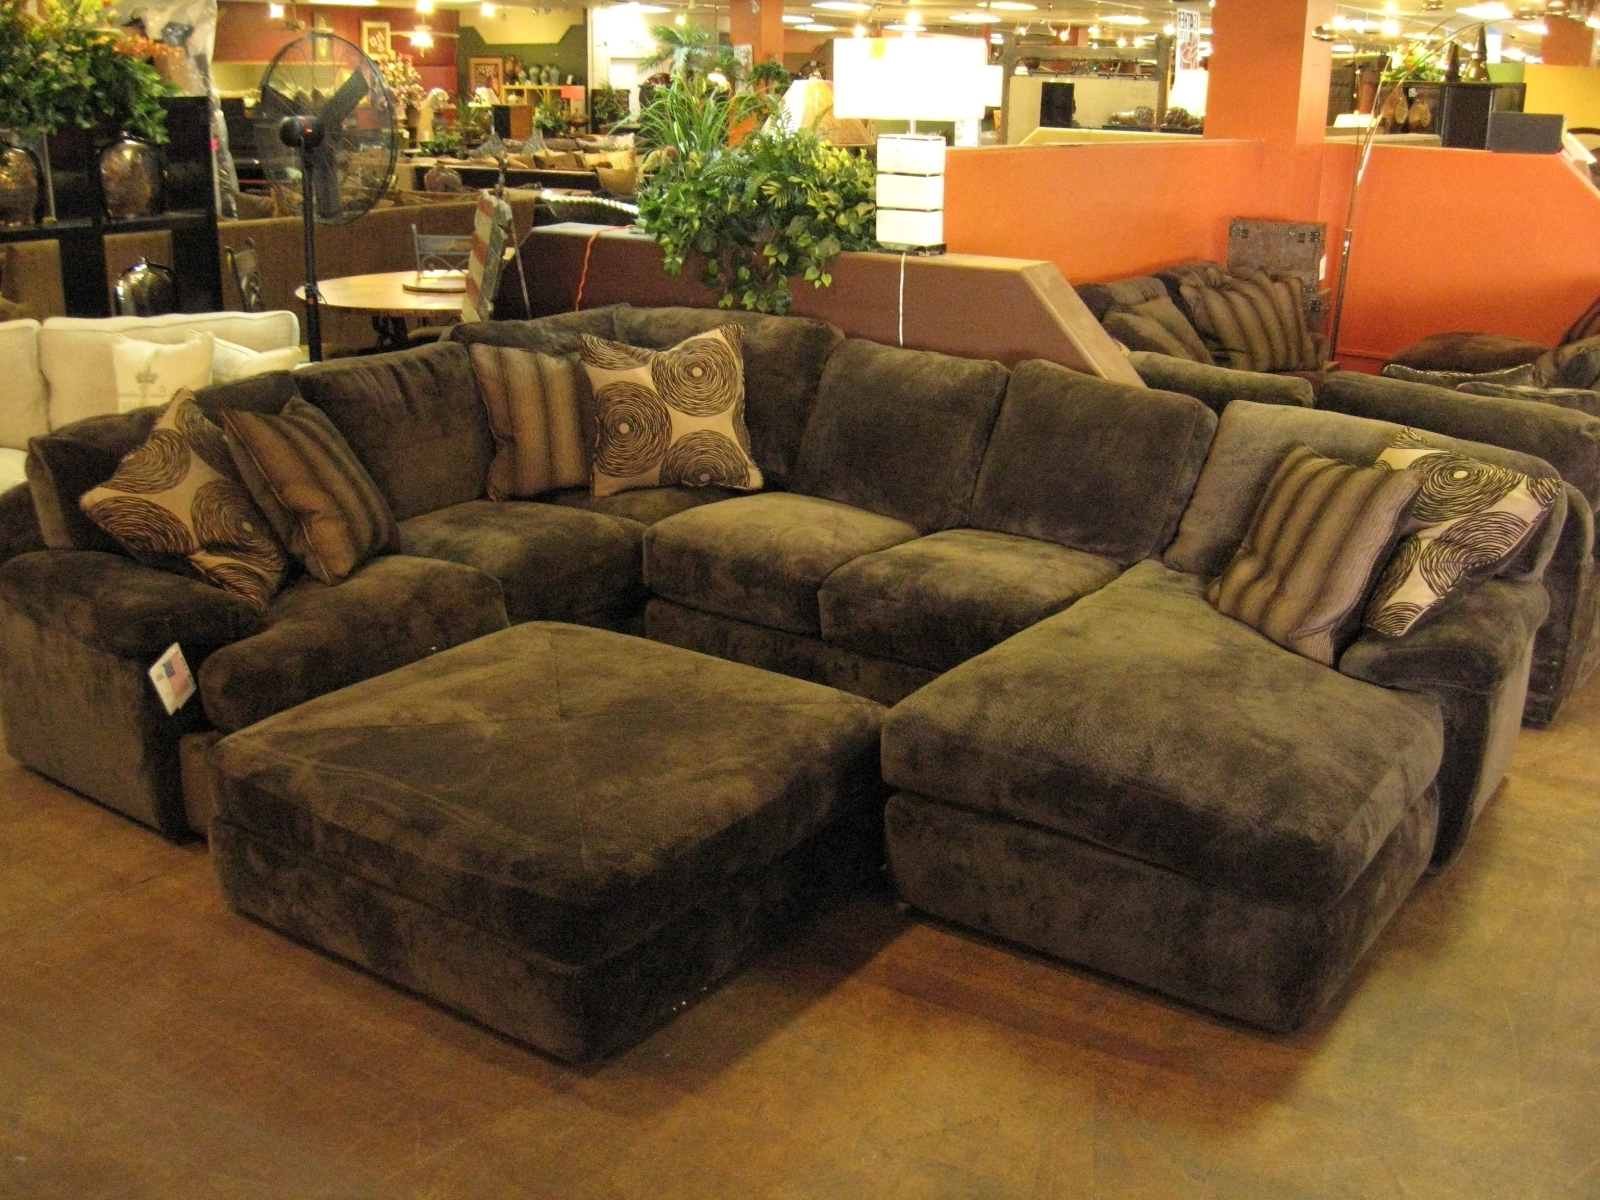 Costco Sectional $999 Ethan Allen Lamps Modern Furniture Warehouse Intended For Recent Greensboro Nc Sectional Sofas (View 12 of 15)